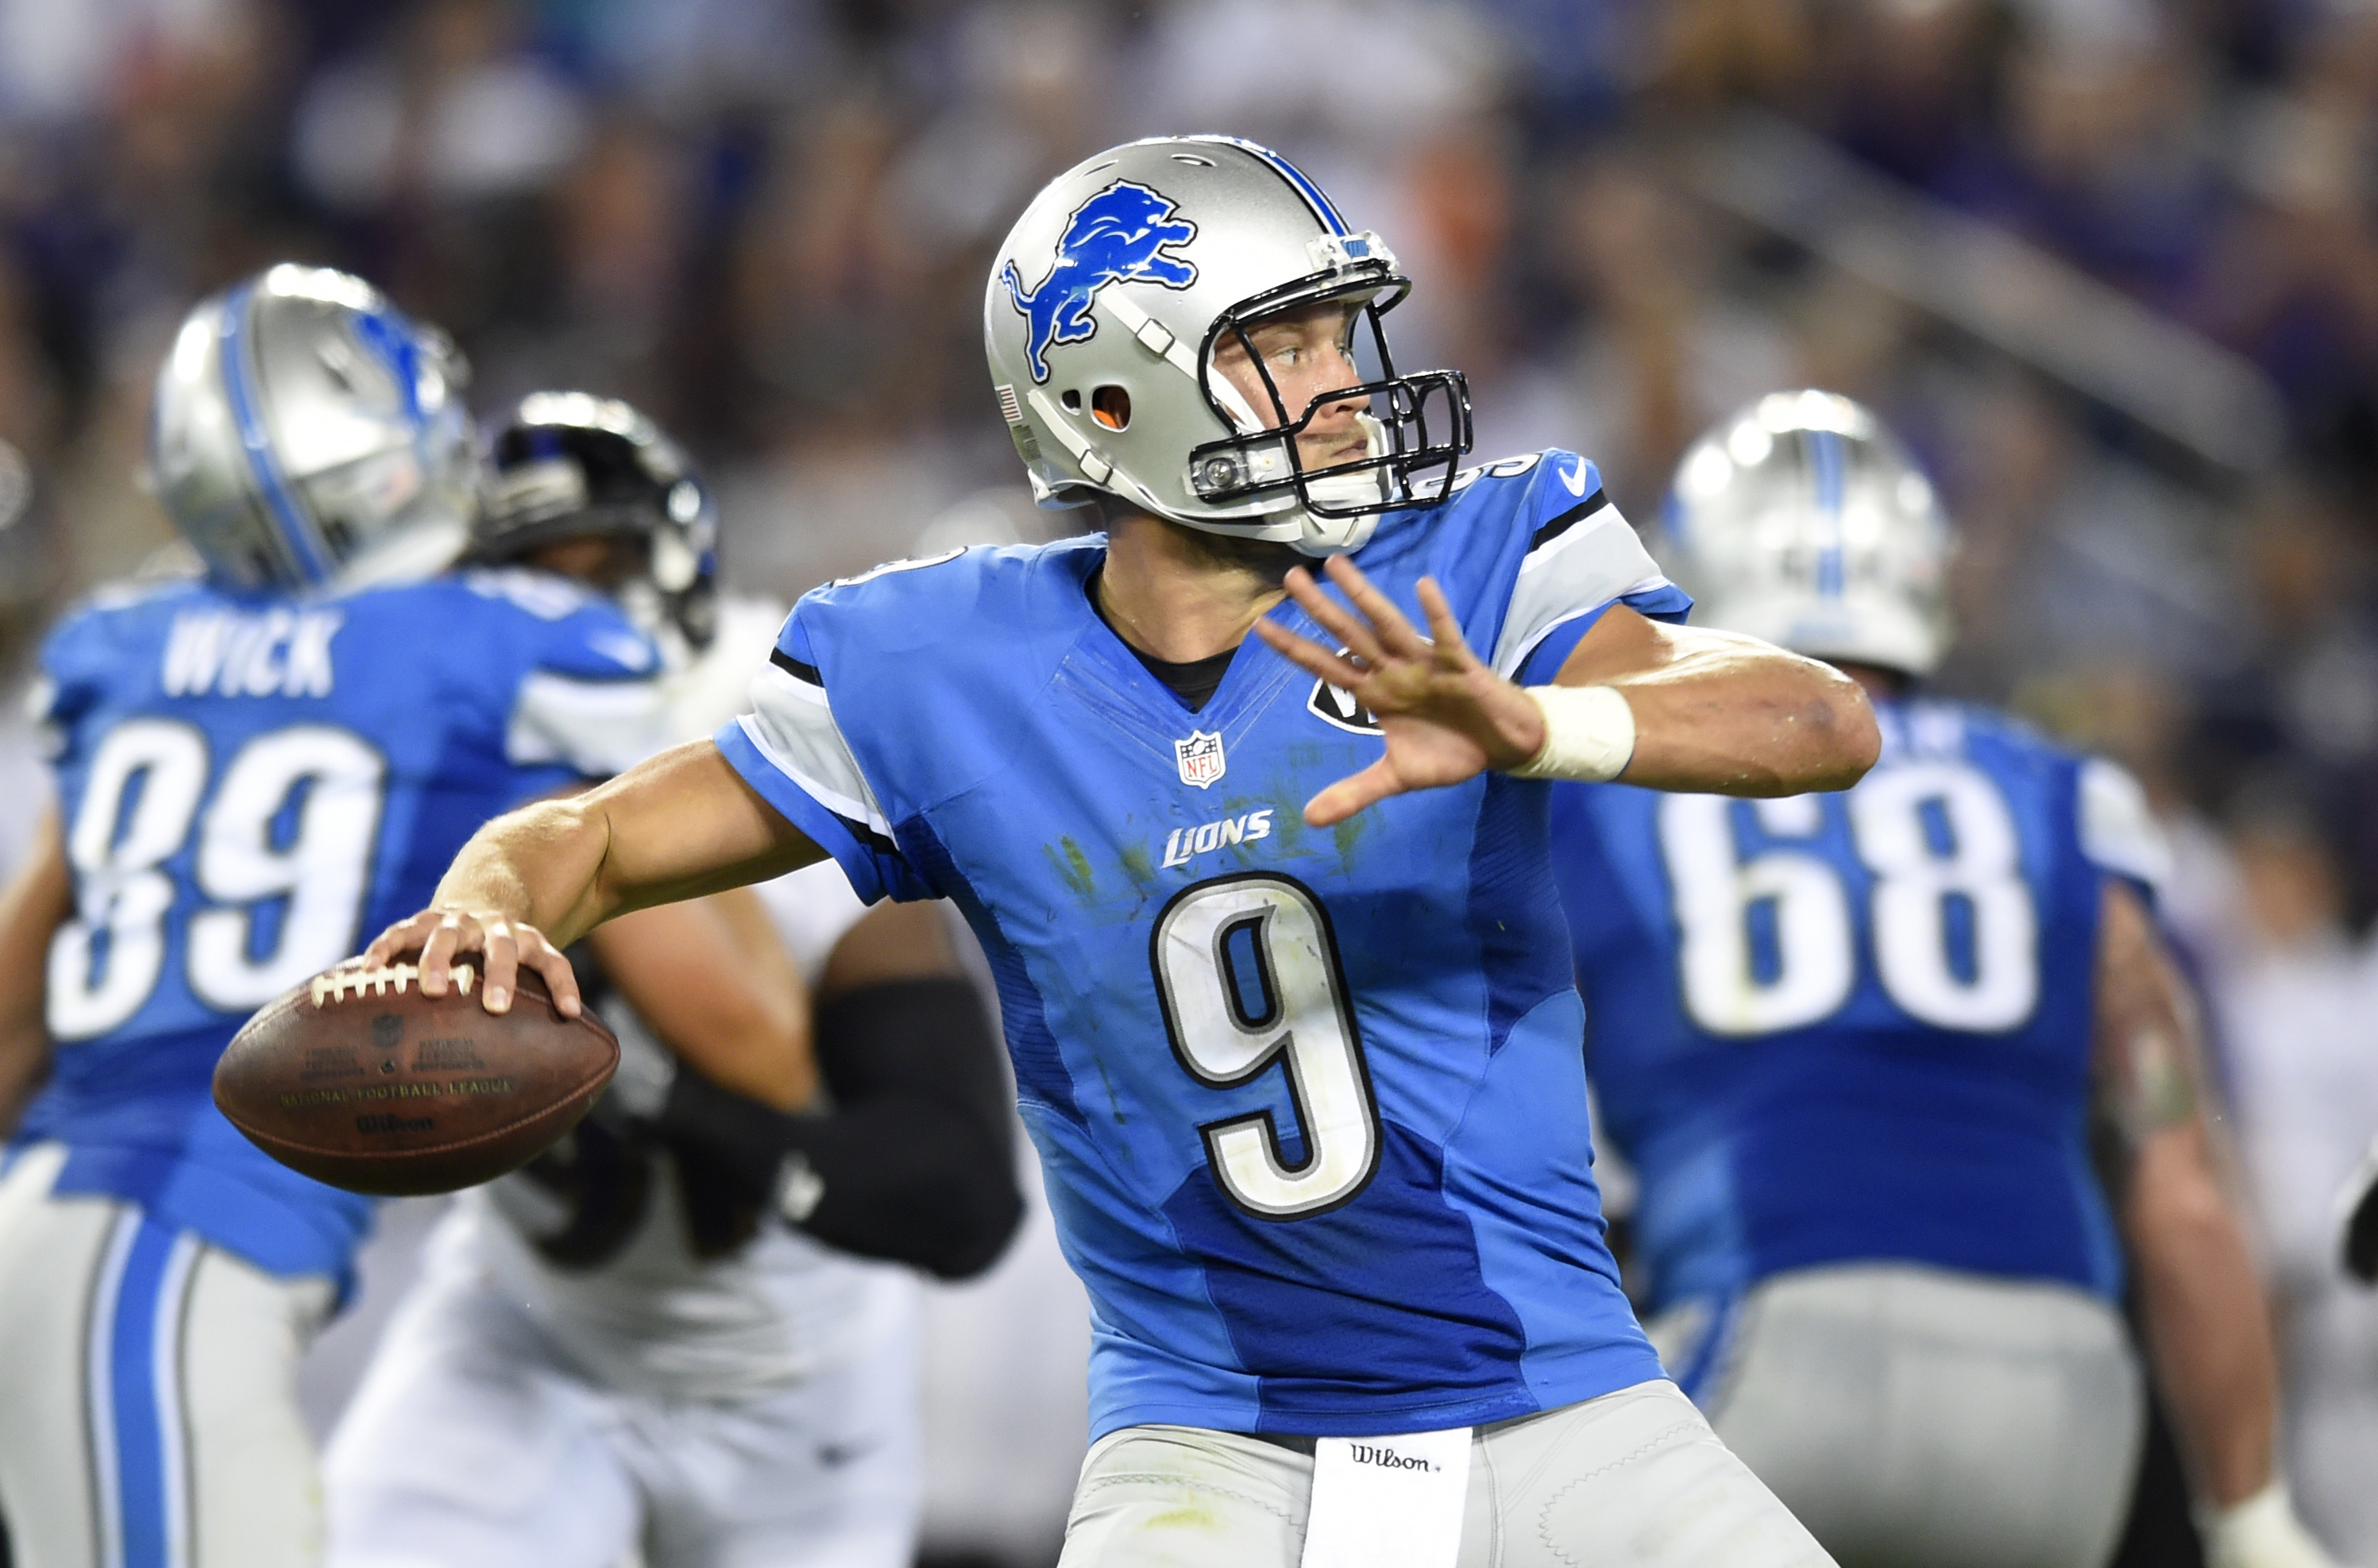 Detroit Lions quarterback Matthew Stafford (9) throws to a receiver in the first half of a preseason NFL football game against the Baltimore Ravens, Saturday, Aug. 27, 2016, in Baltimore. (AP Photo/Gail Burton)